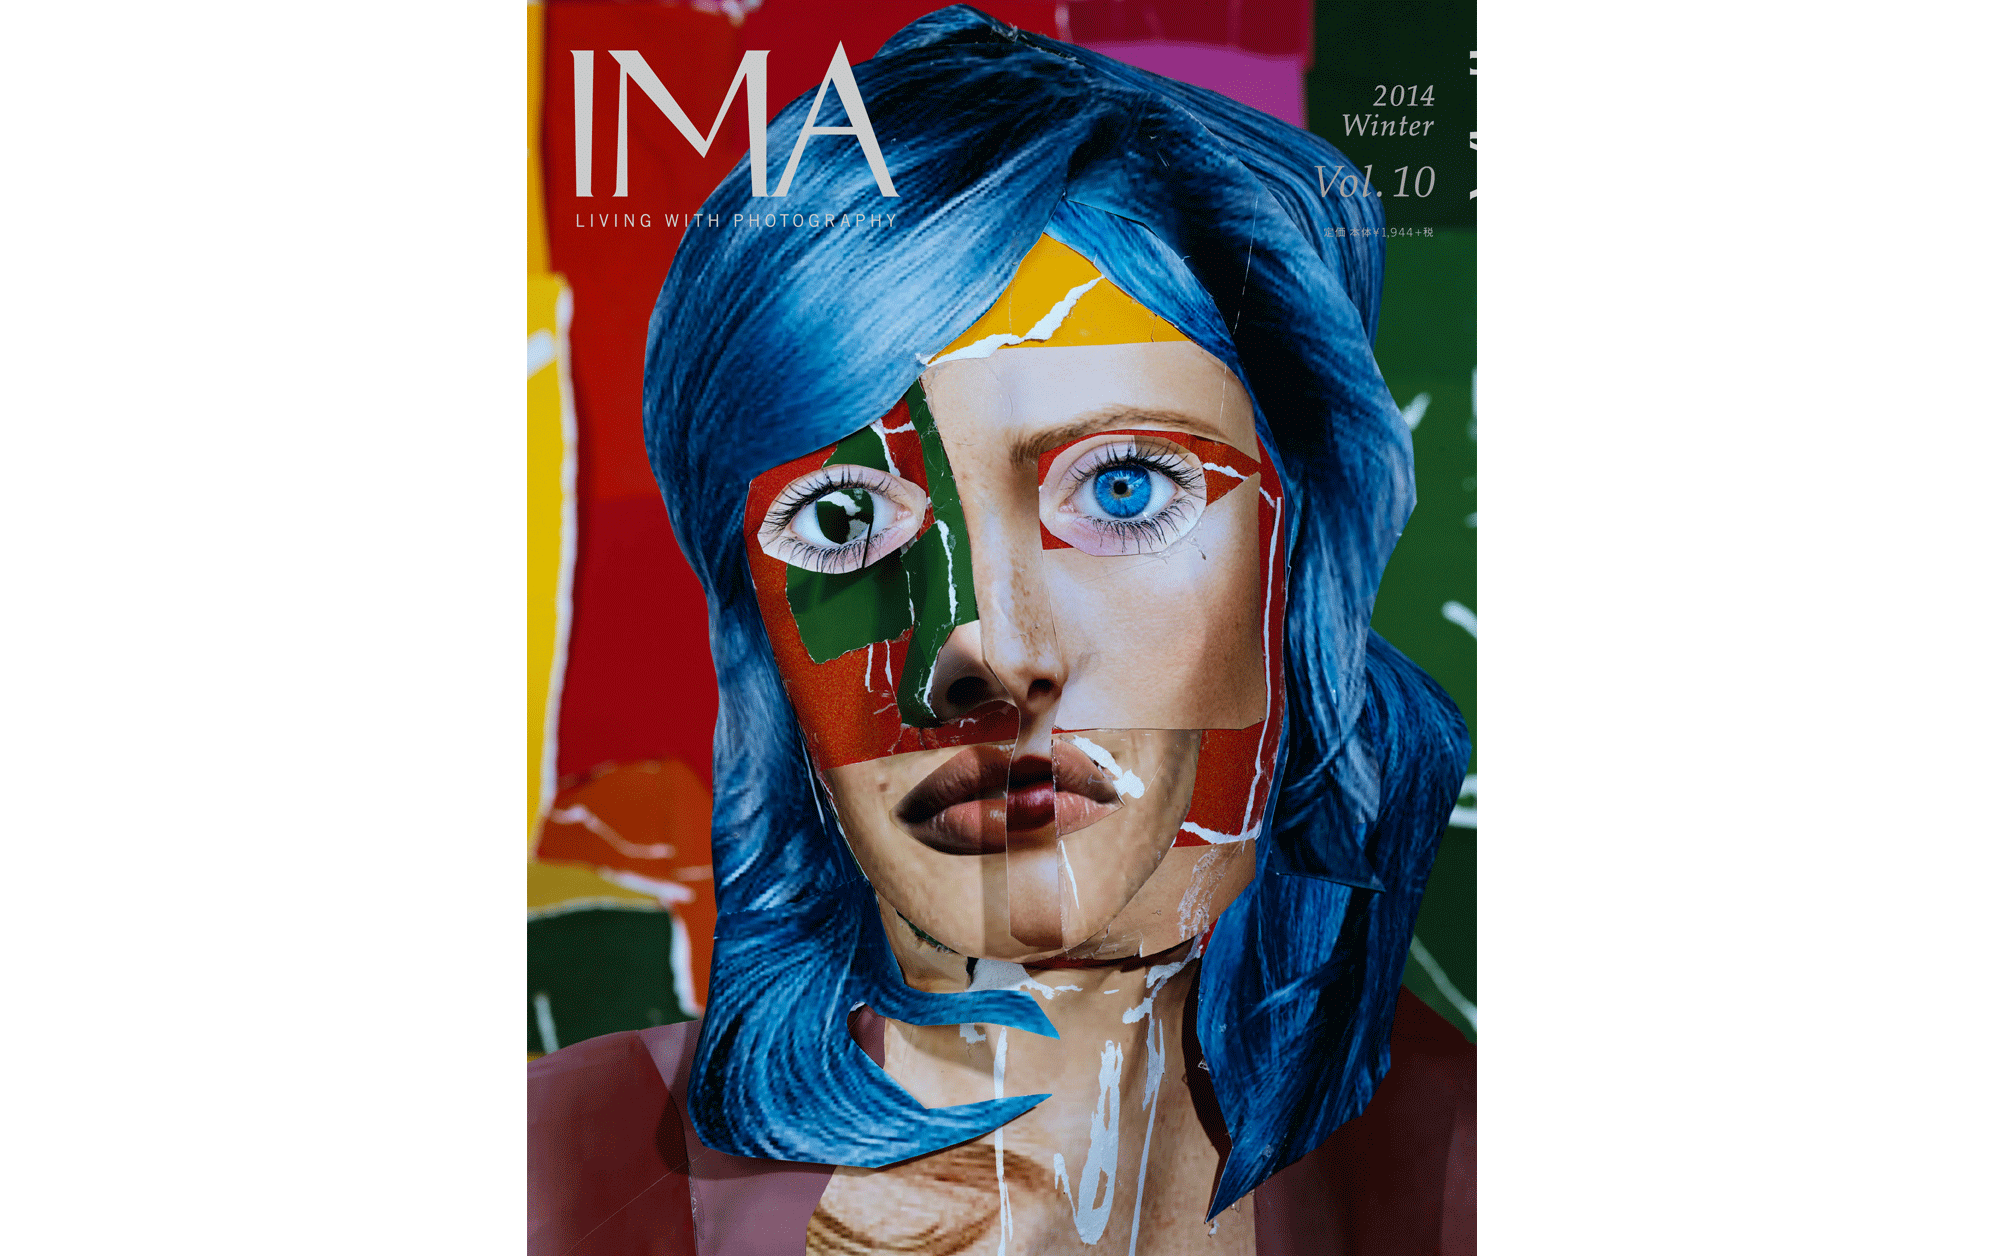 IMA 2014 Winter Vol.10